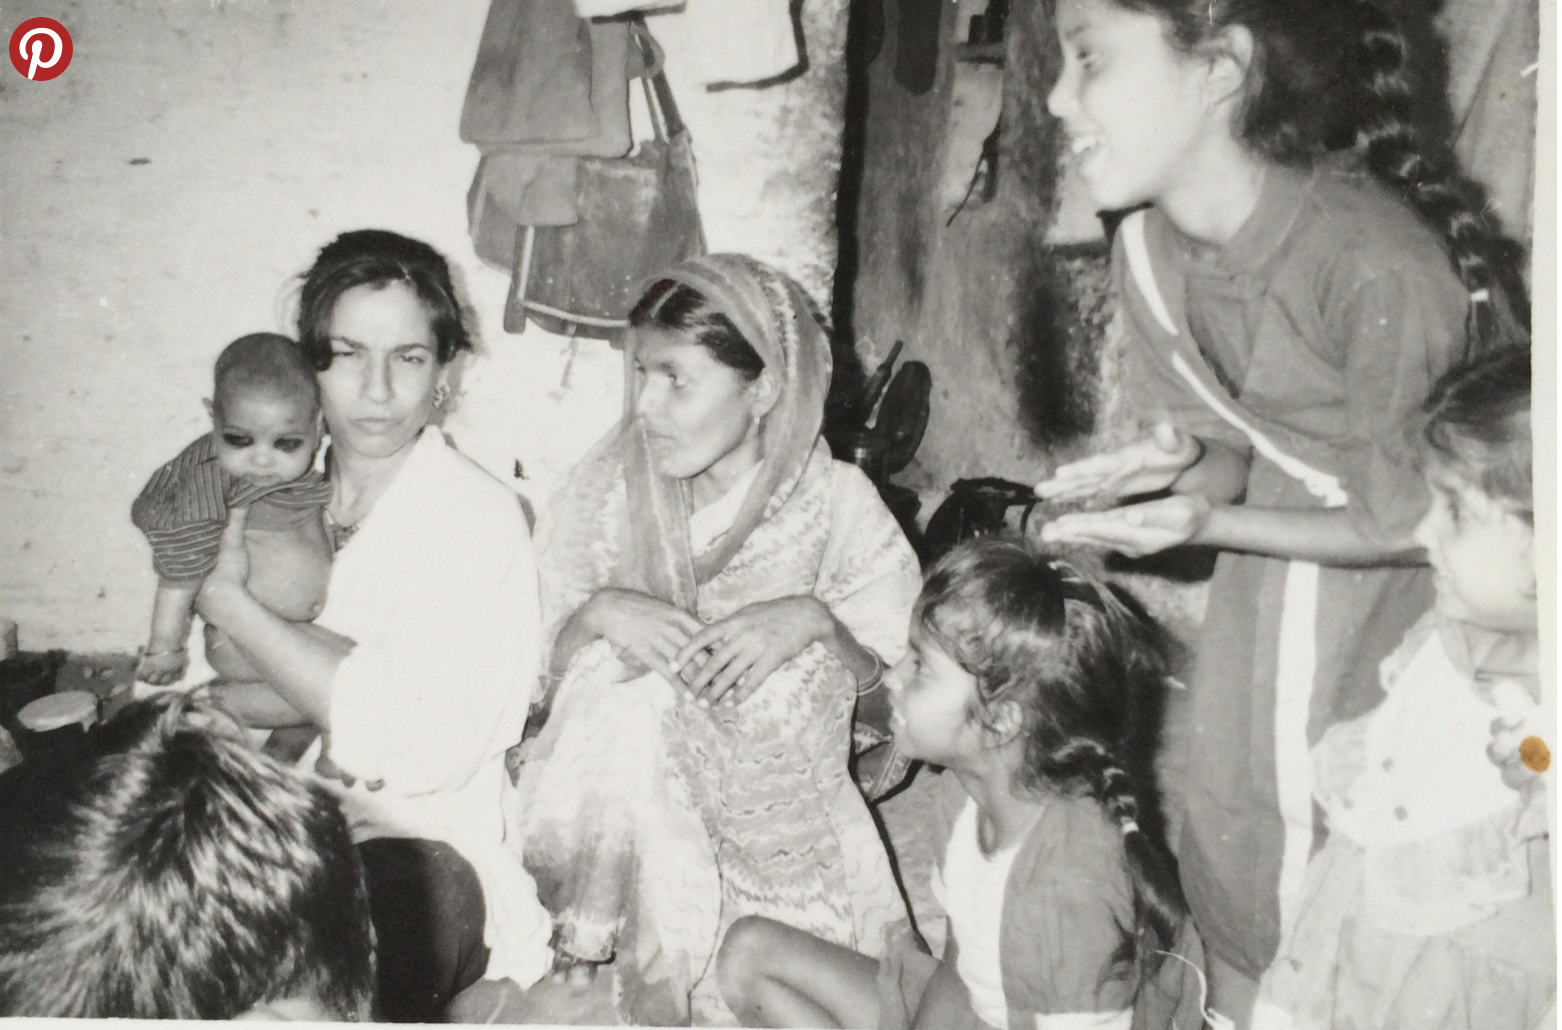 This is me with a family of toymakers I studied with in India for a year as a young lass. Want to know more? Call me!